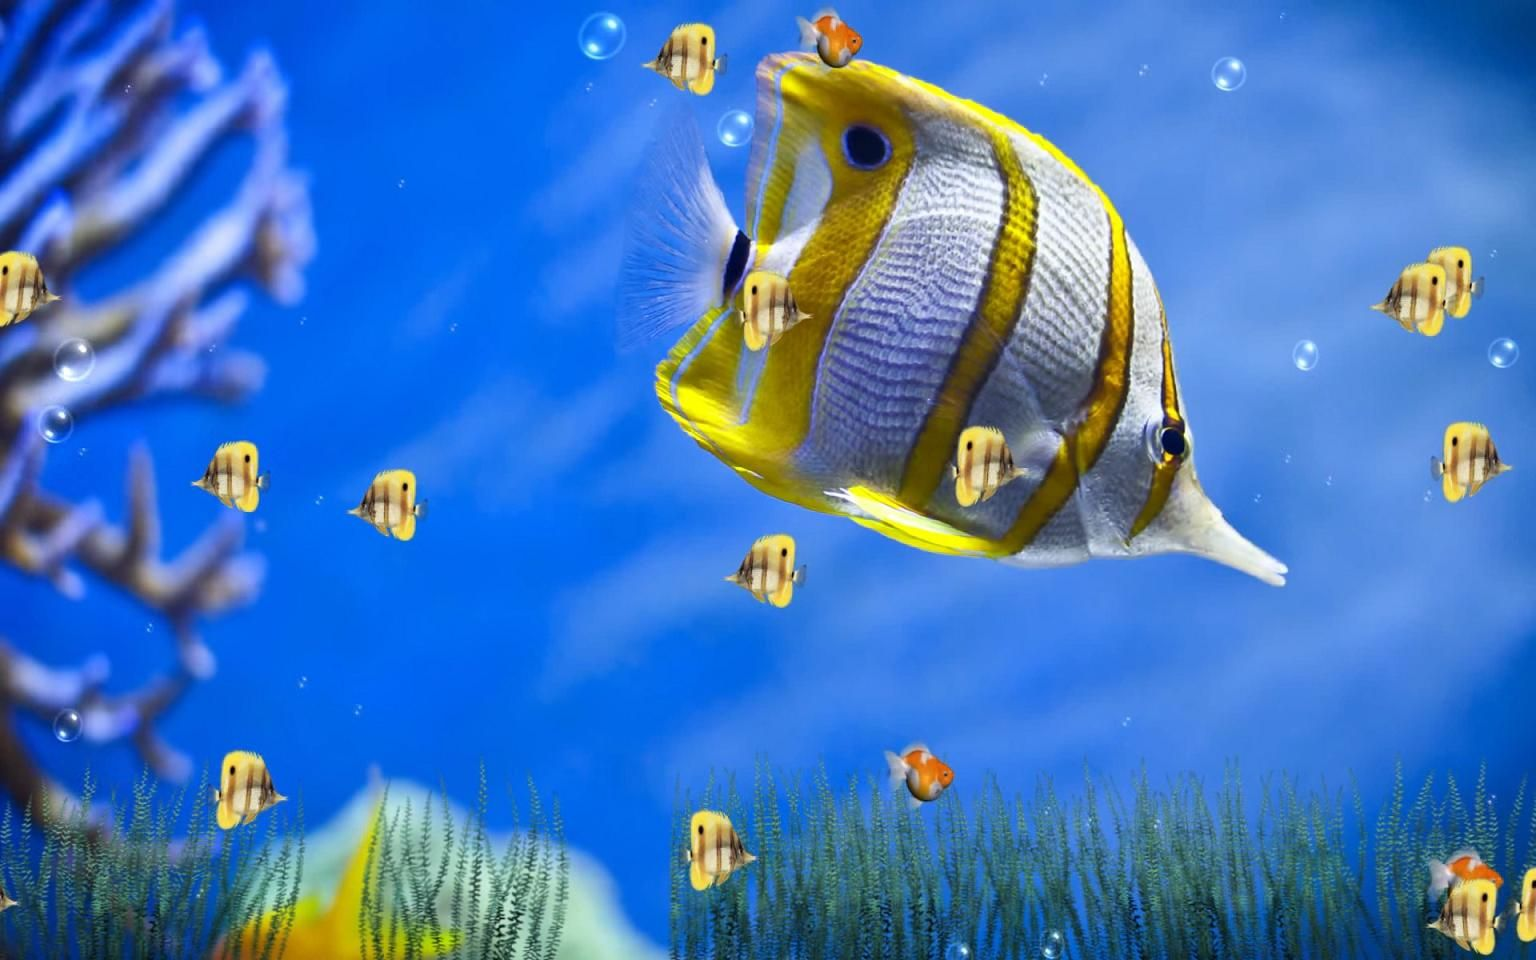 Cute Love Animation Wallpaper Moving Fish Backgrounds Free No Downloads Animated